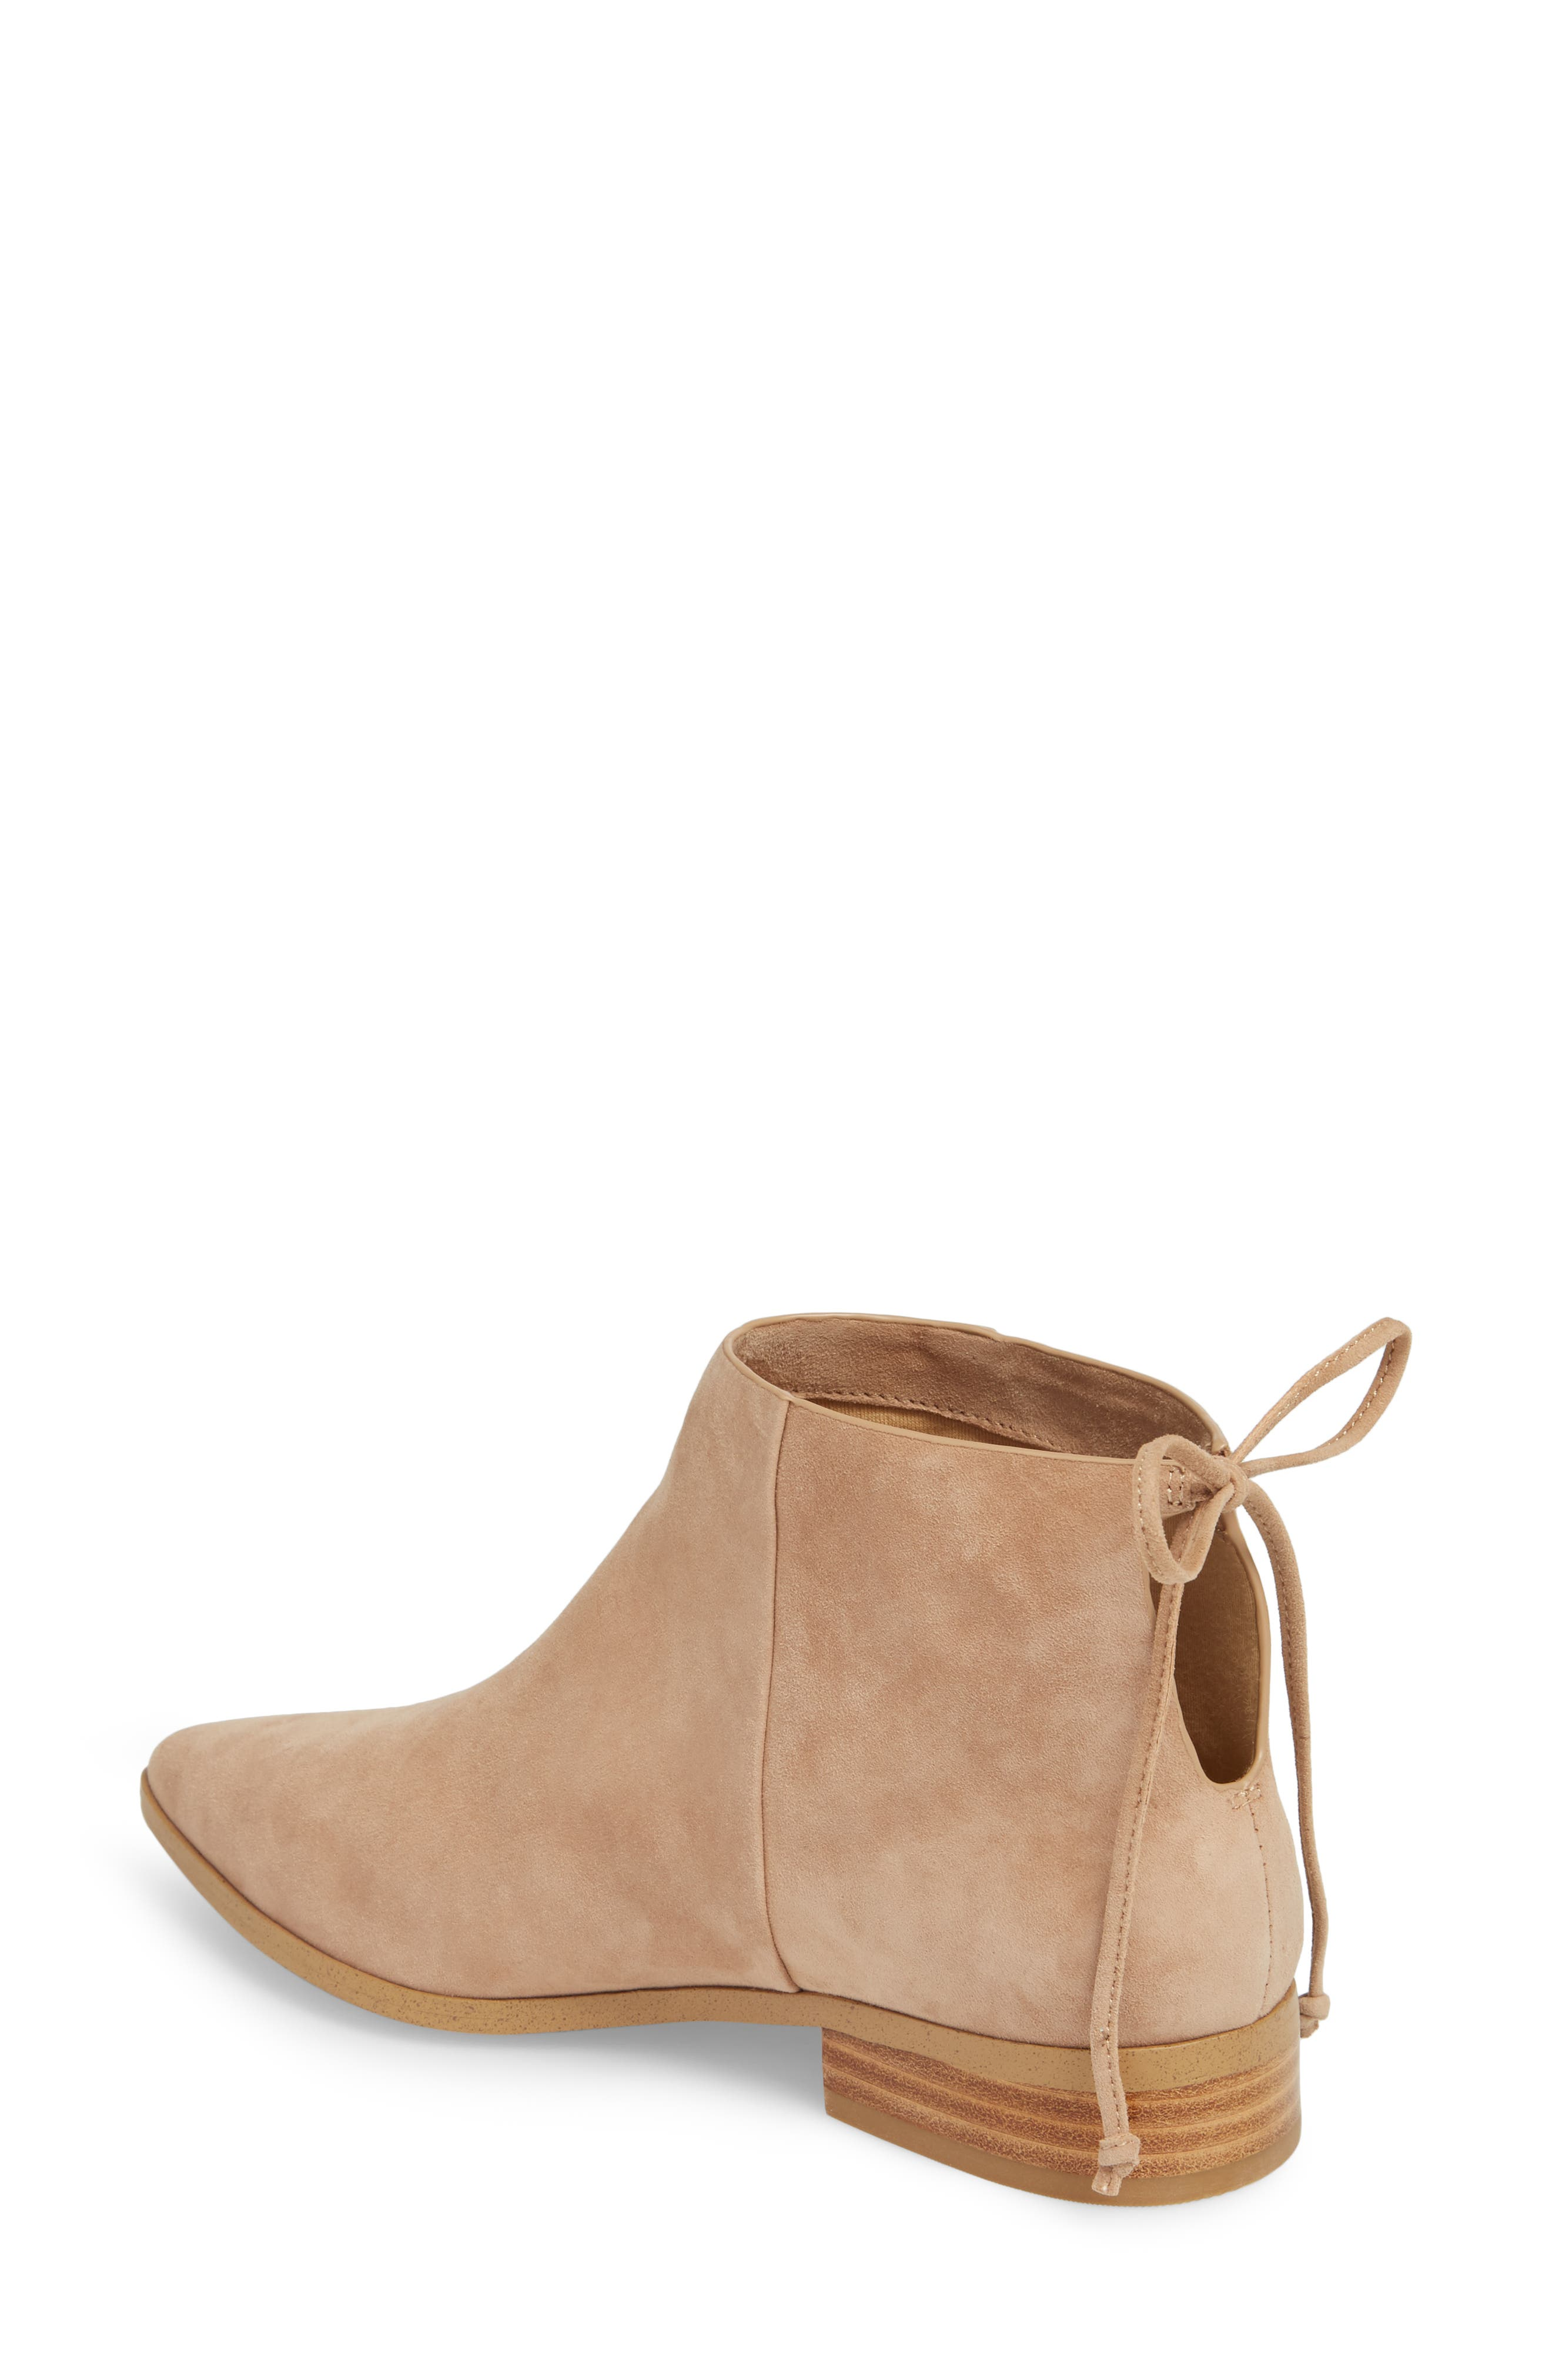 Niva Bootie,                             Alternate thumbnail 2, color,                             Driftwood Suede